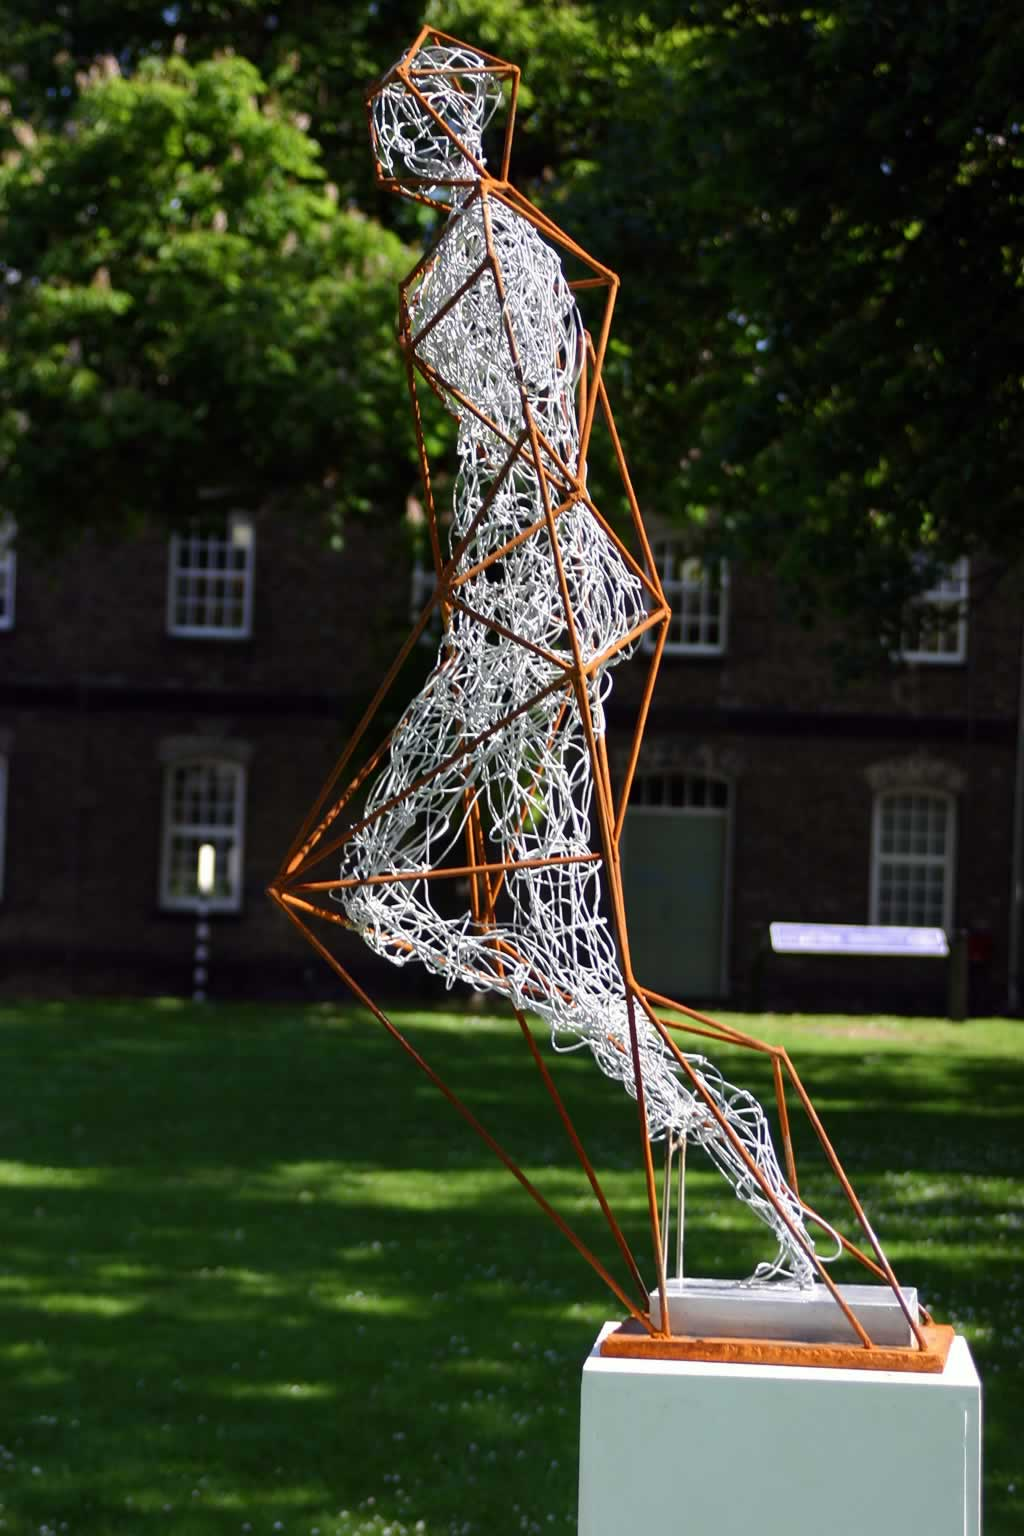 Between The Lines (abstract figurative sculpture) by sculptor Ian Campbell-Briggs